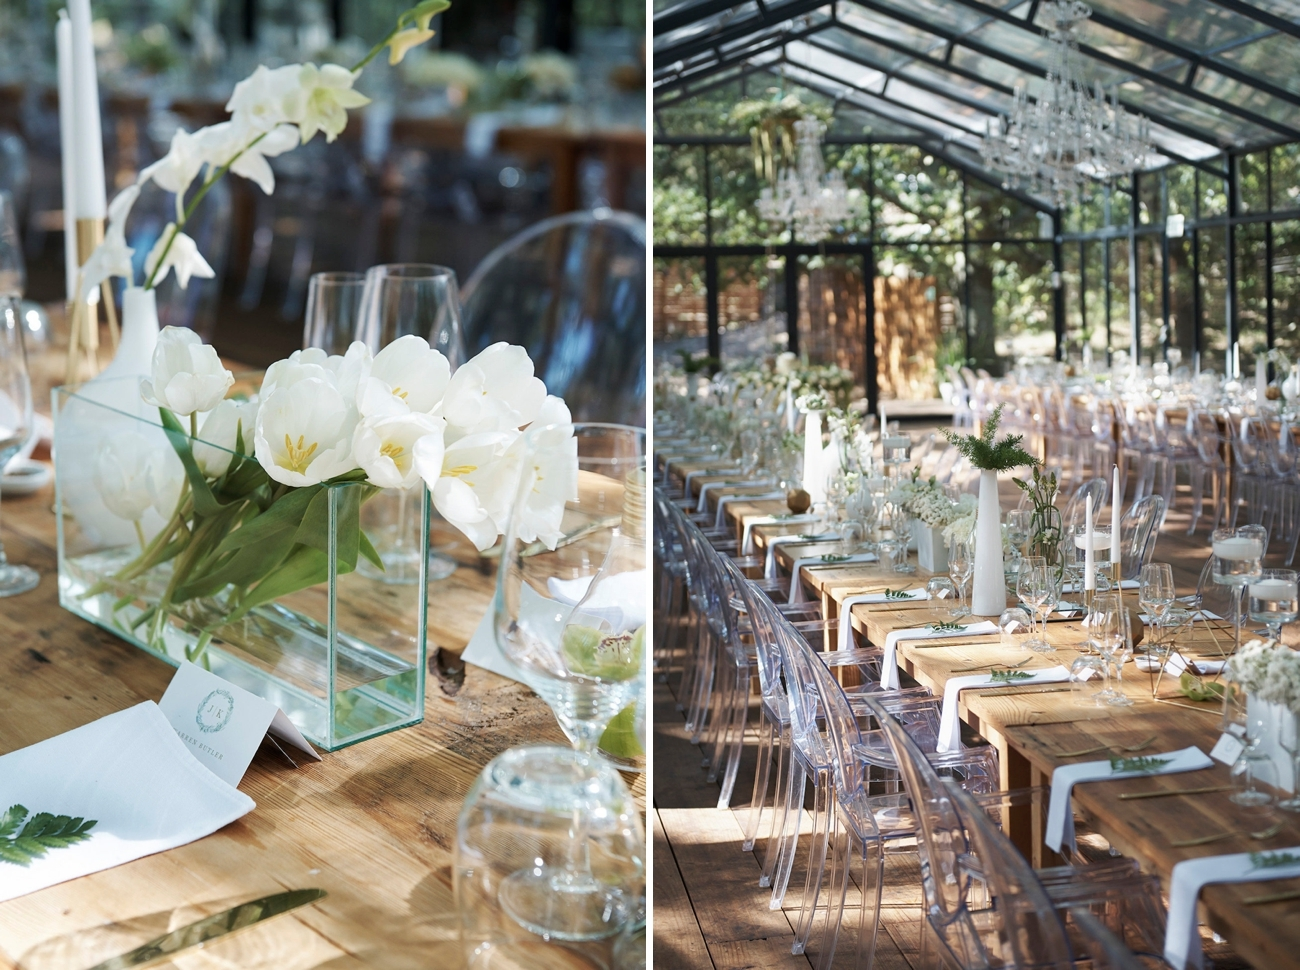 Elegant Rustic Wedding Decor | Image: Knit Together Photography